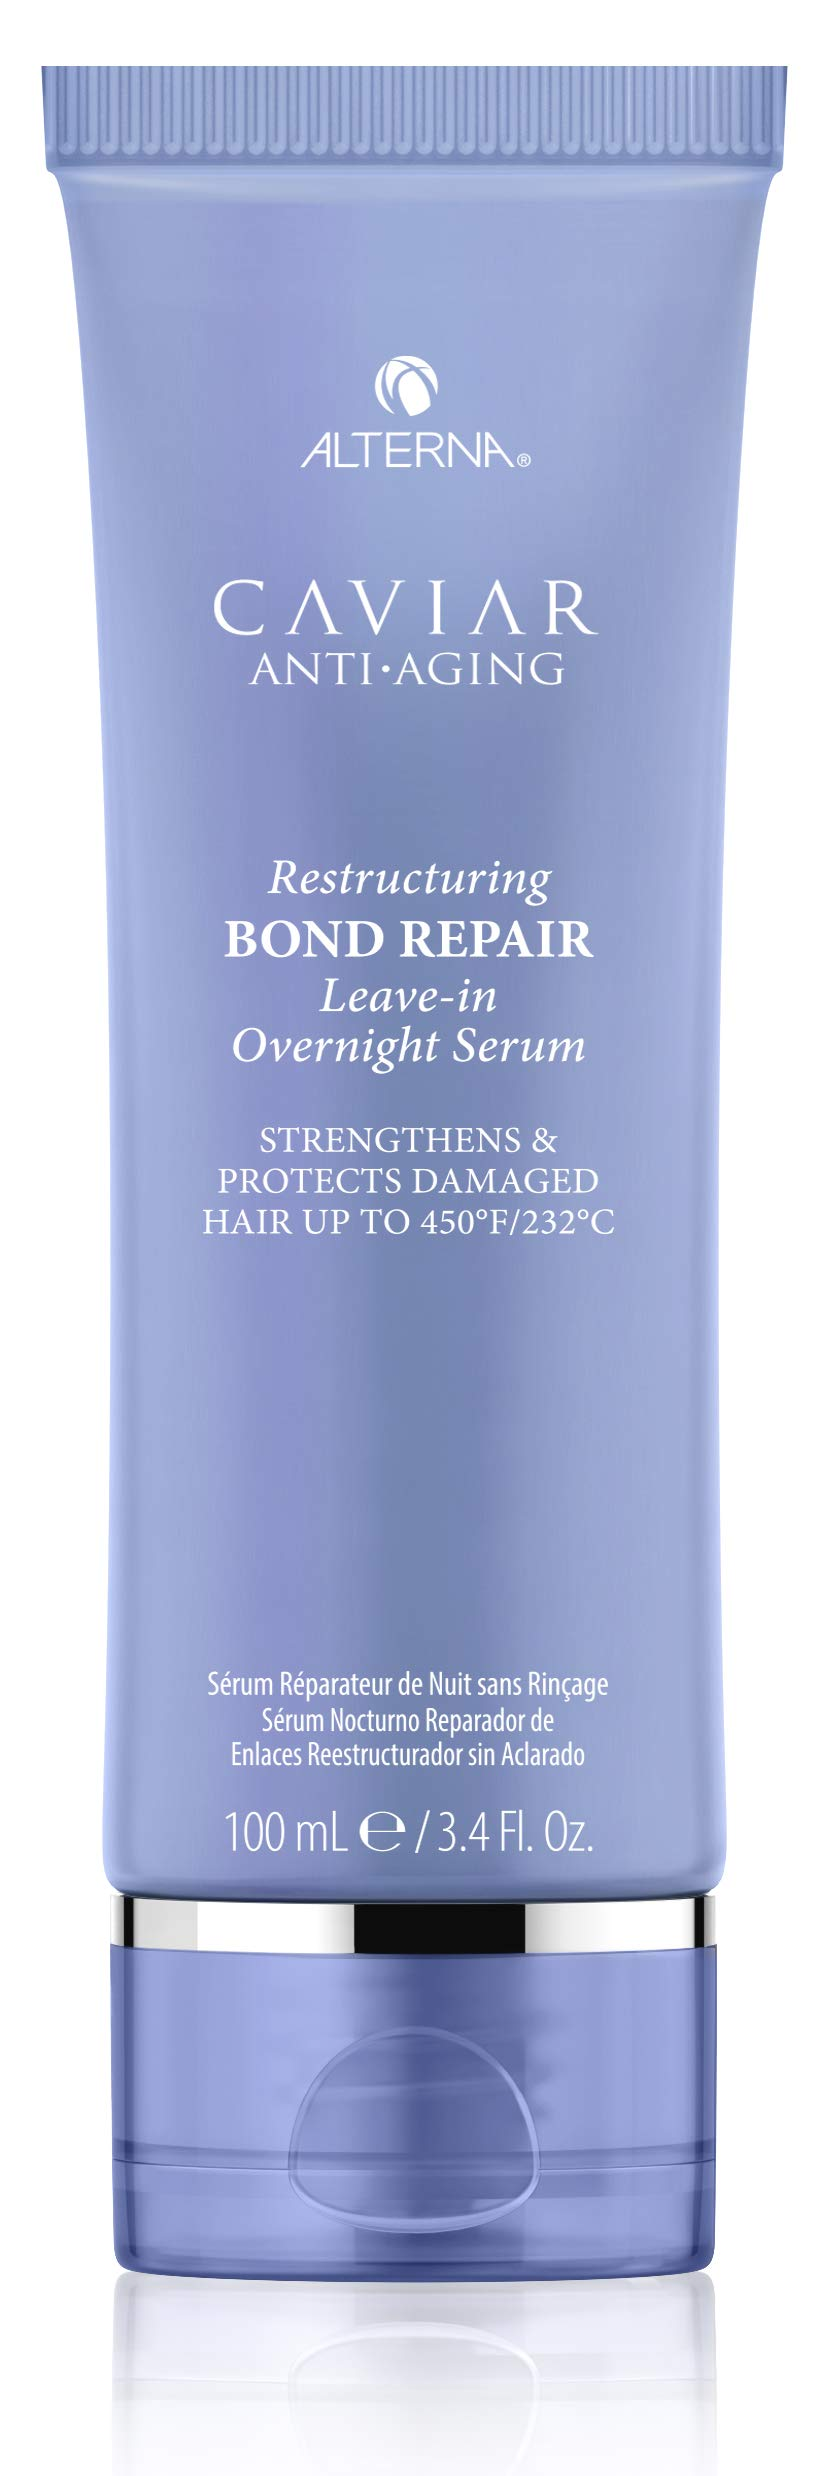 Alterna Caviar Anti-Aging Restructuring Leave-in Overnight Serum, 3.4 Fl Oz | Strengthens & Protects Damaged Hair